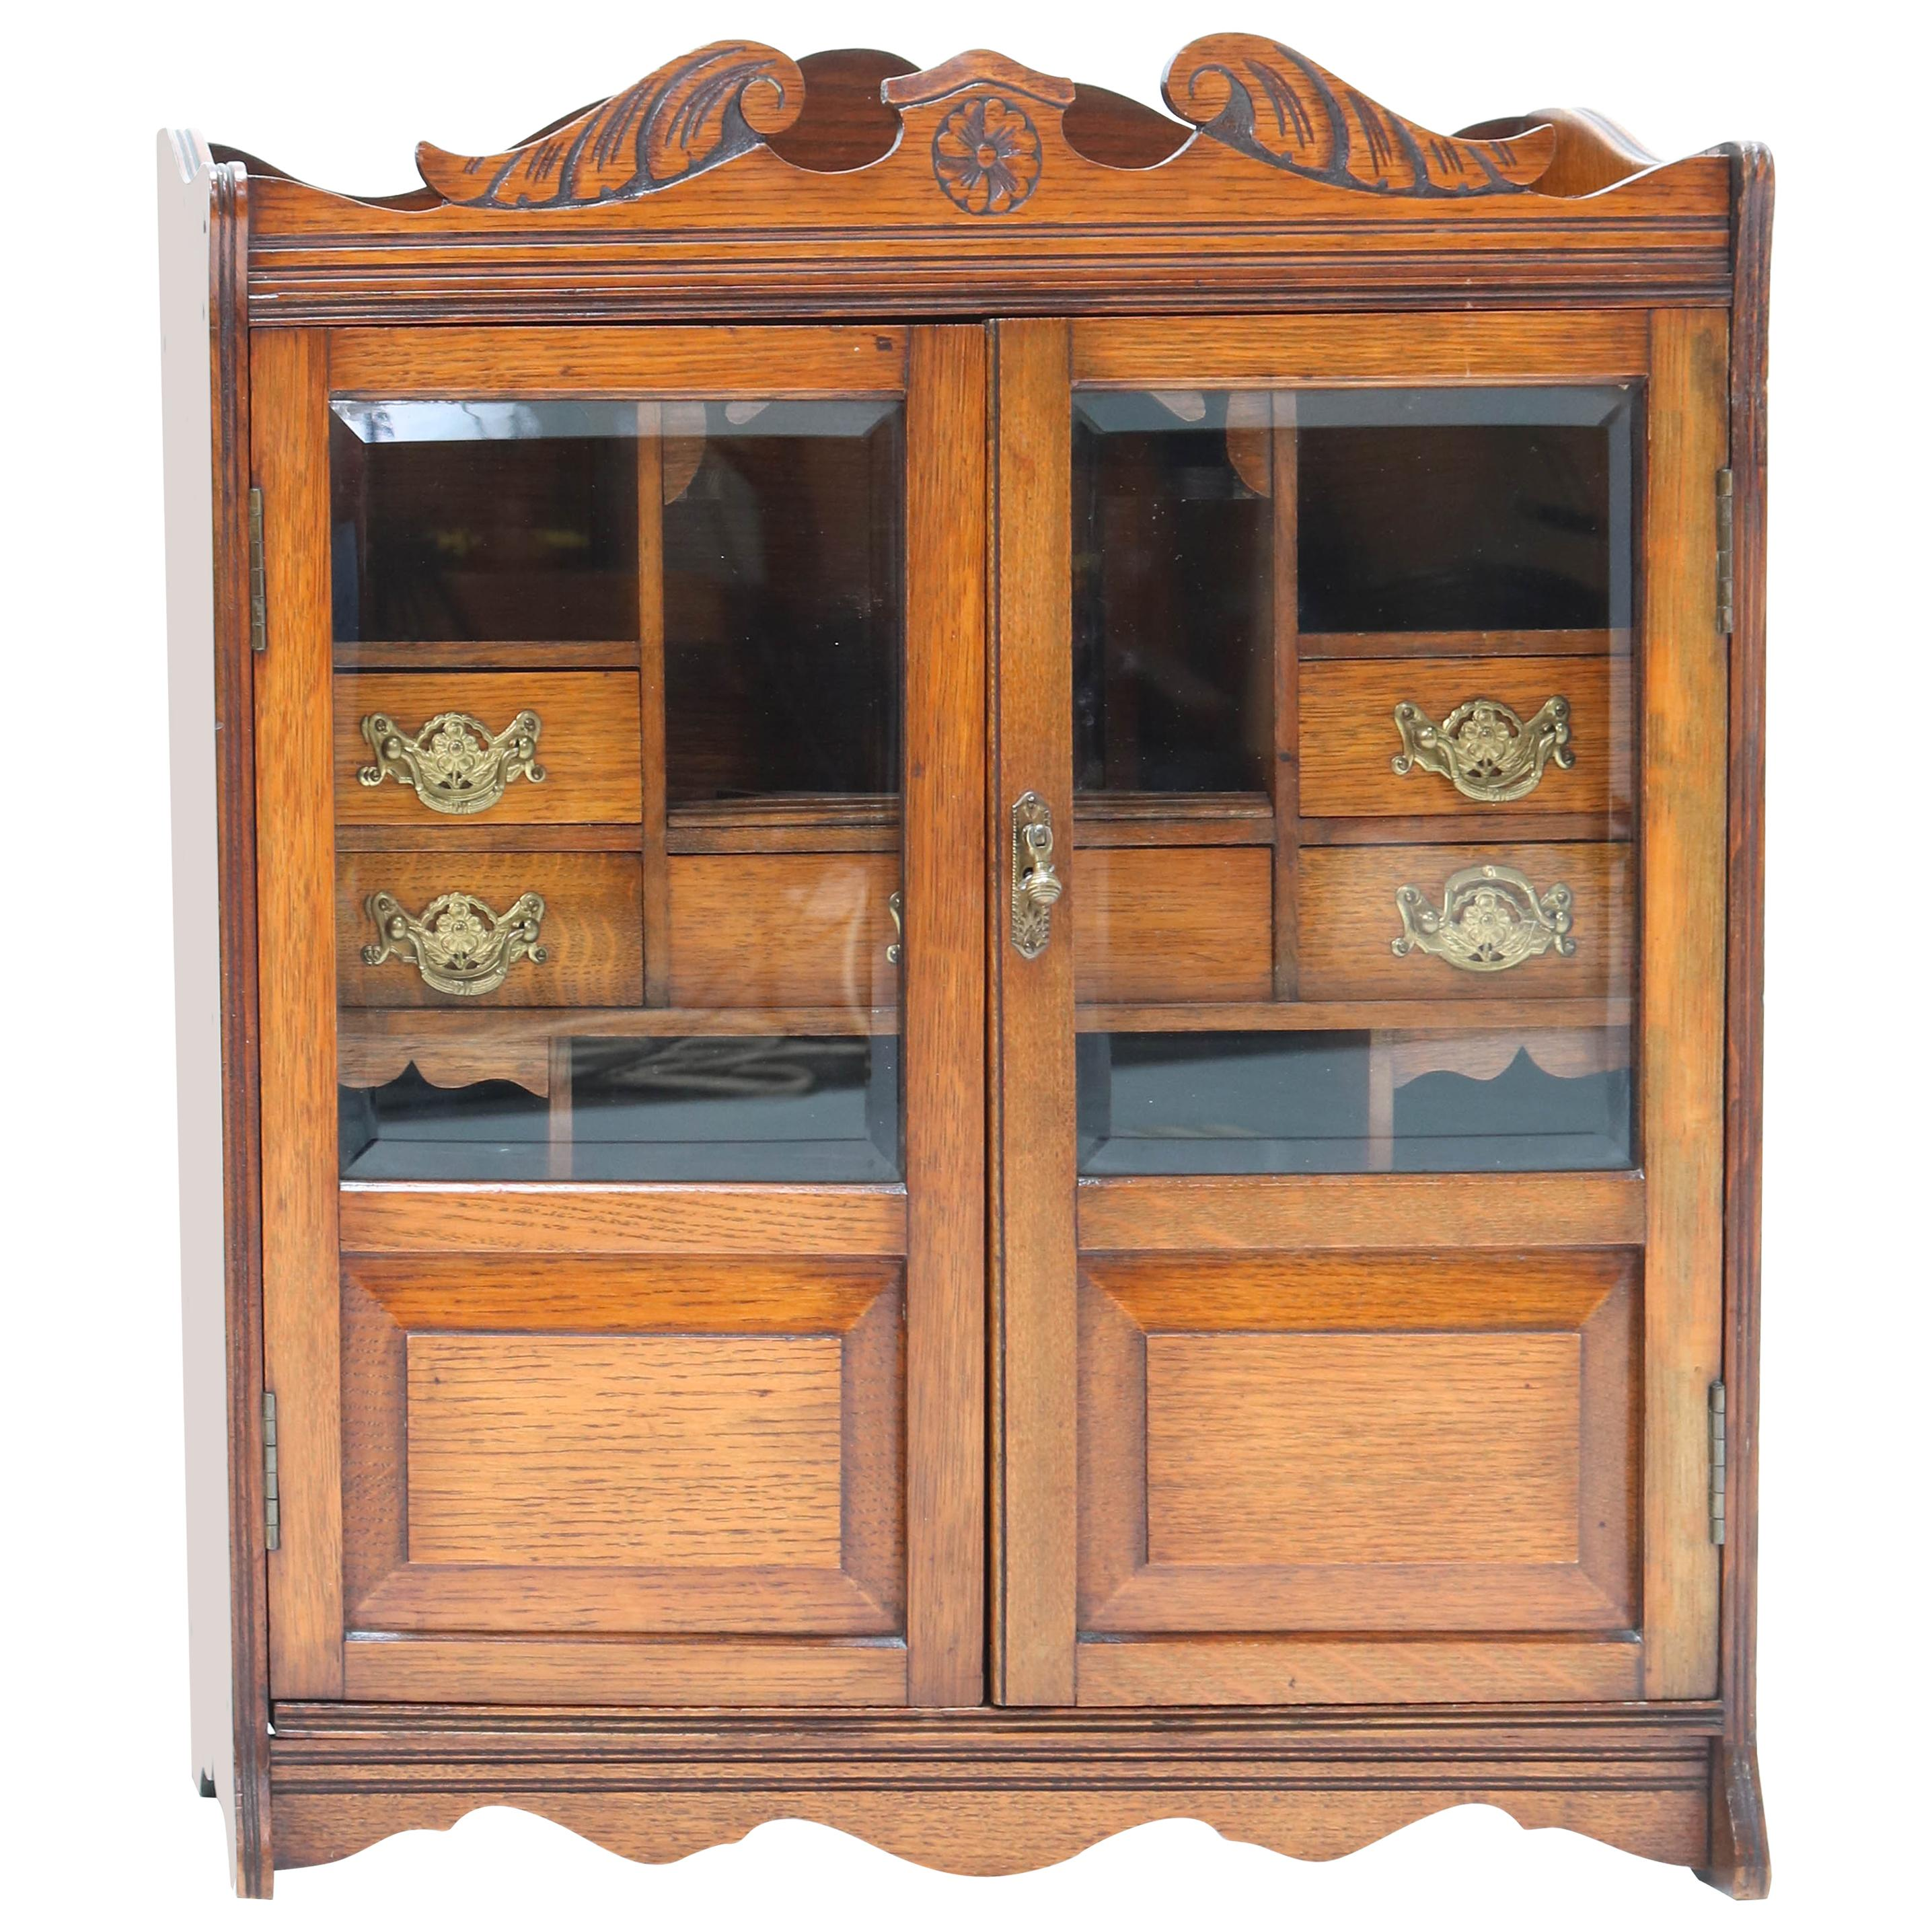 Walnut Aesthetic Movement Wall Cabinet, Late 19th Century